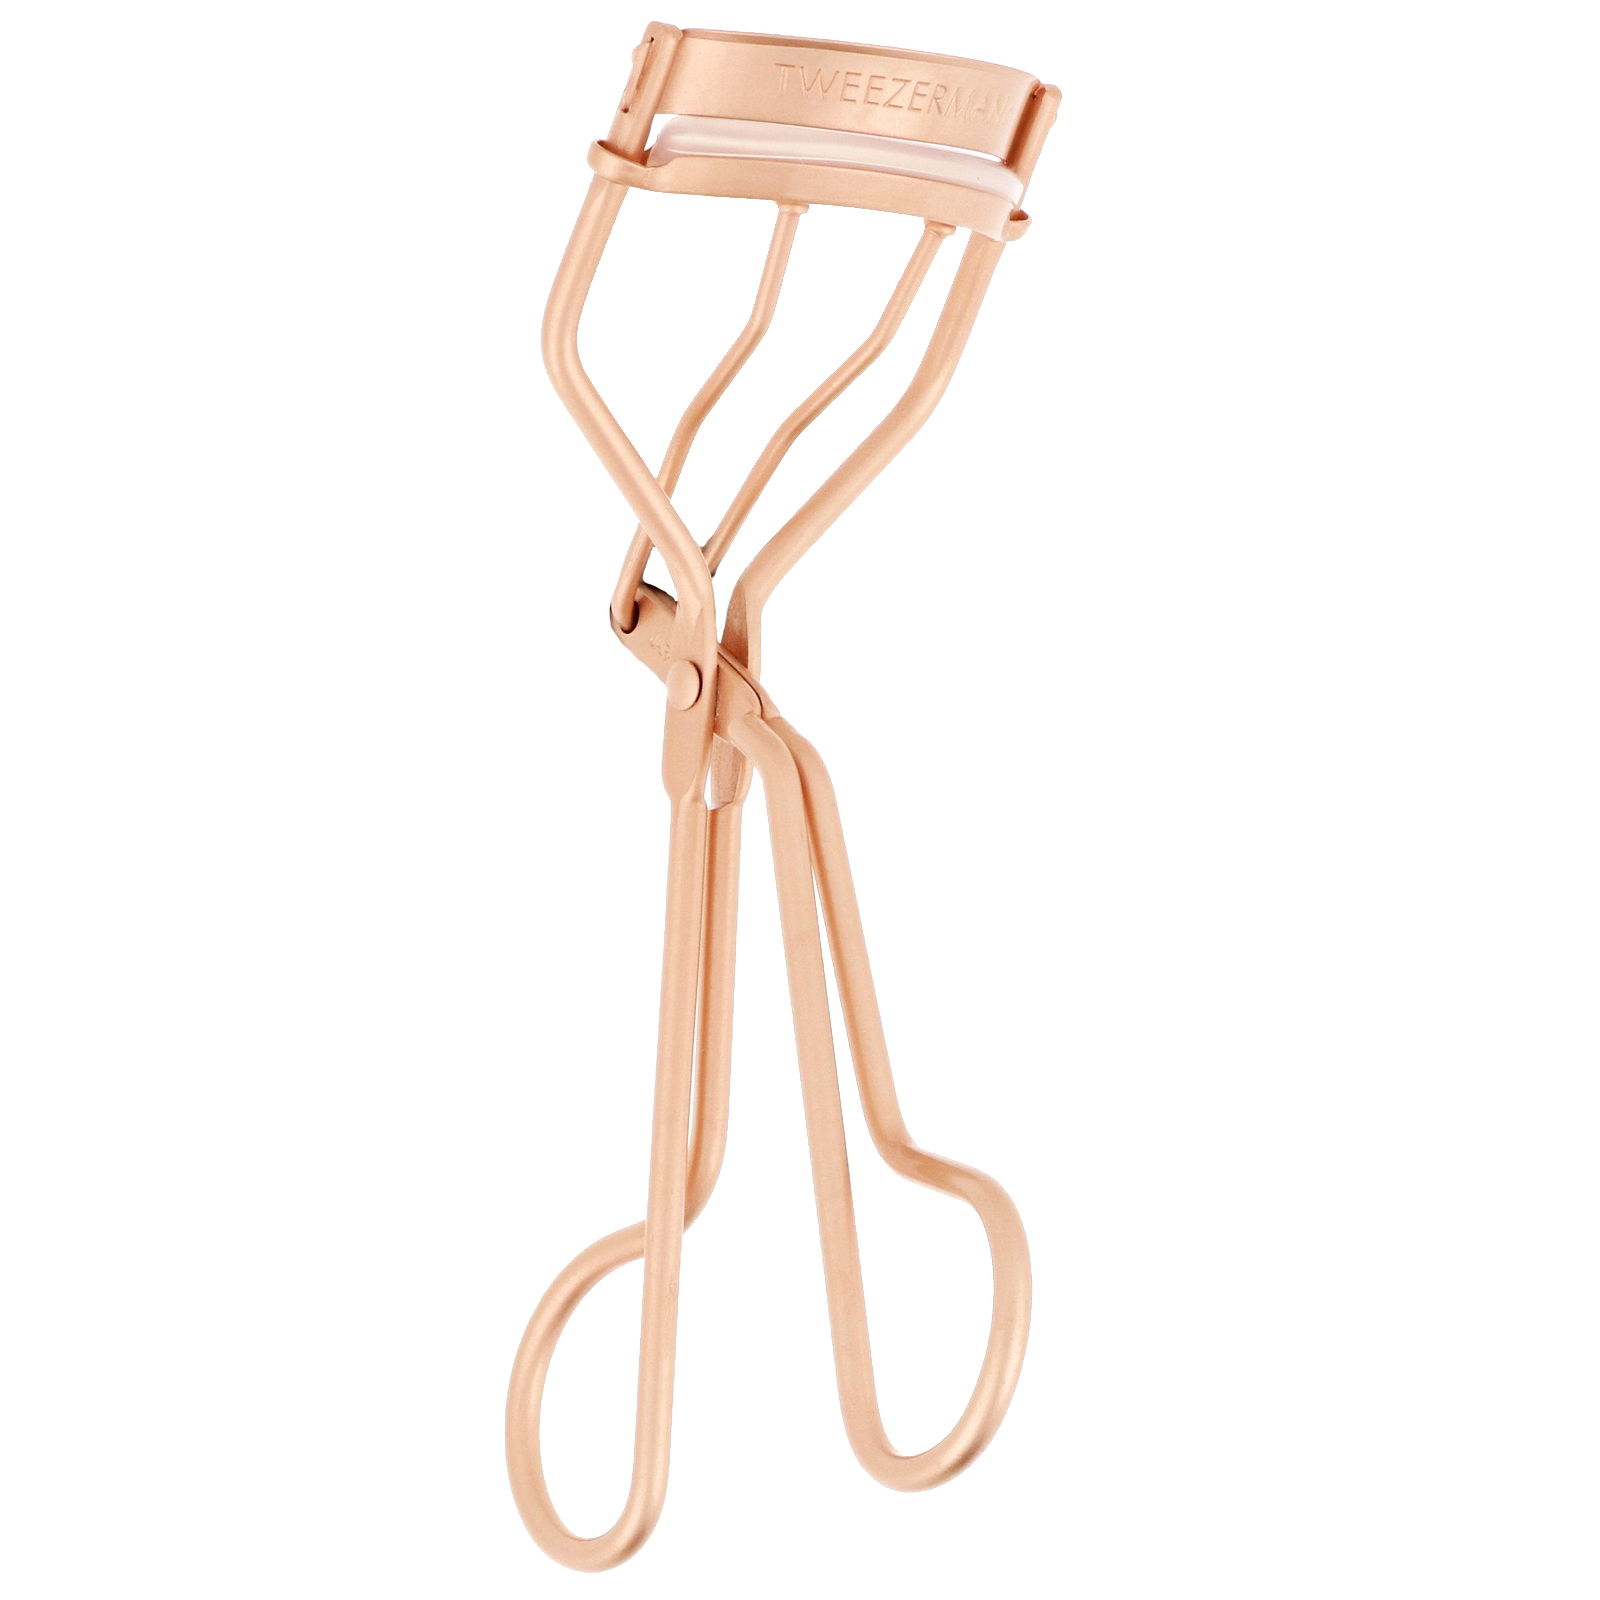 Tweezerman Lashes Classic Eyelash Curler Rose Gold